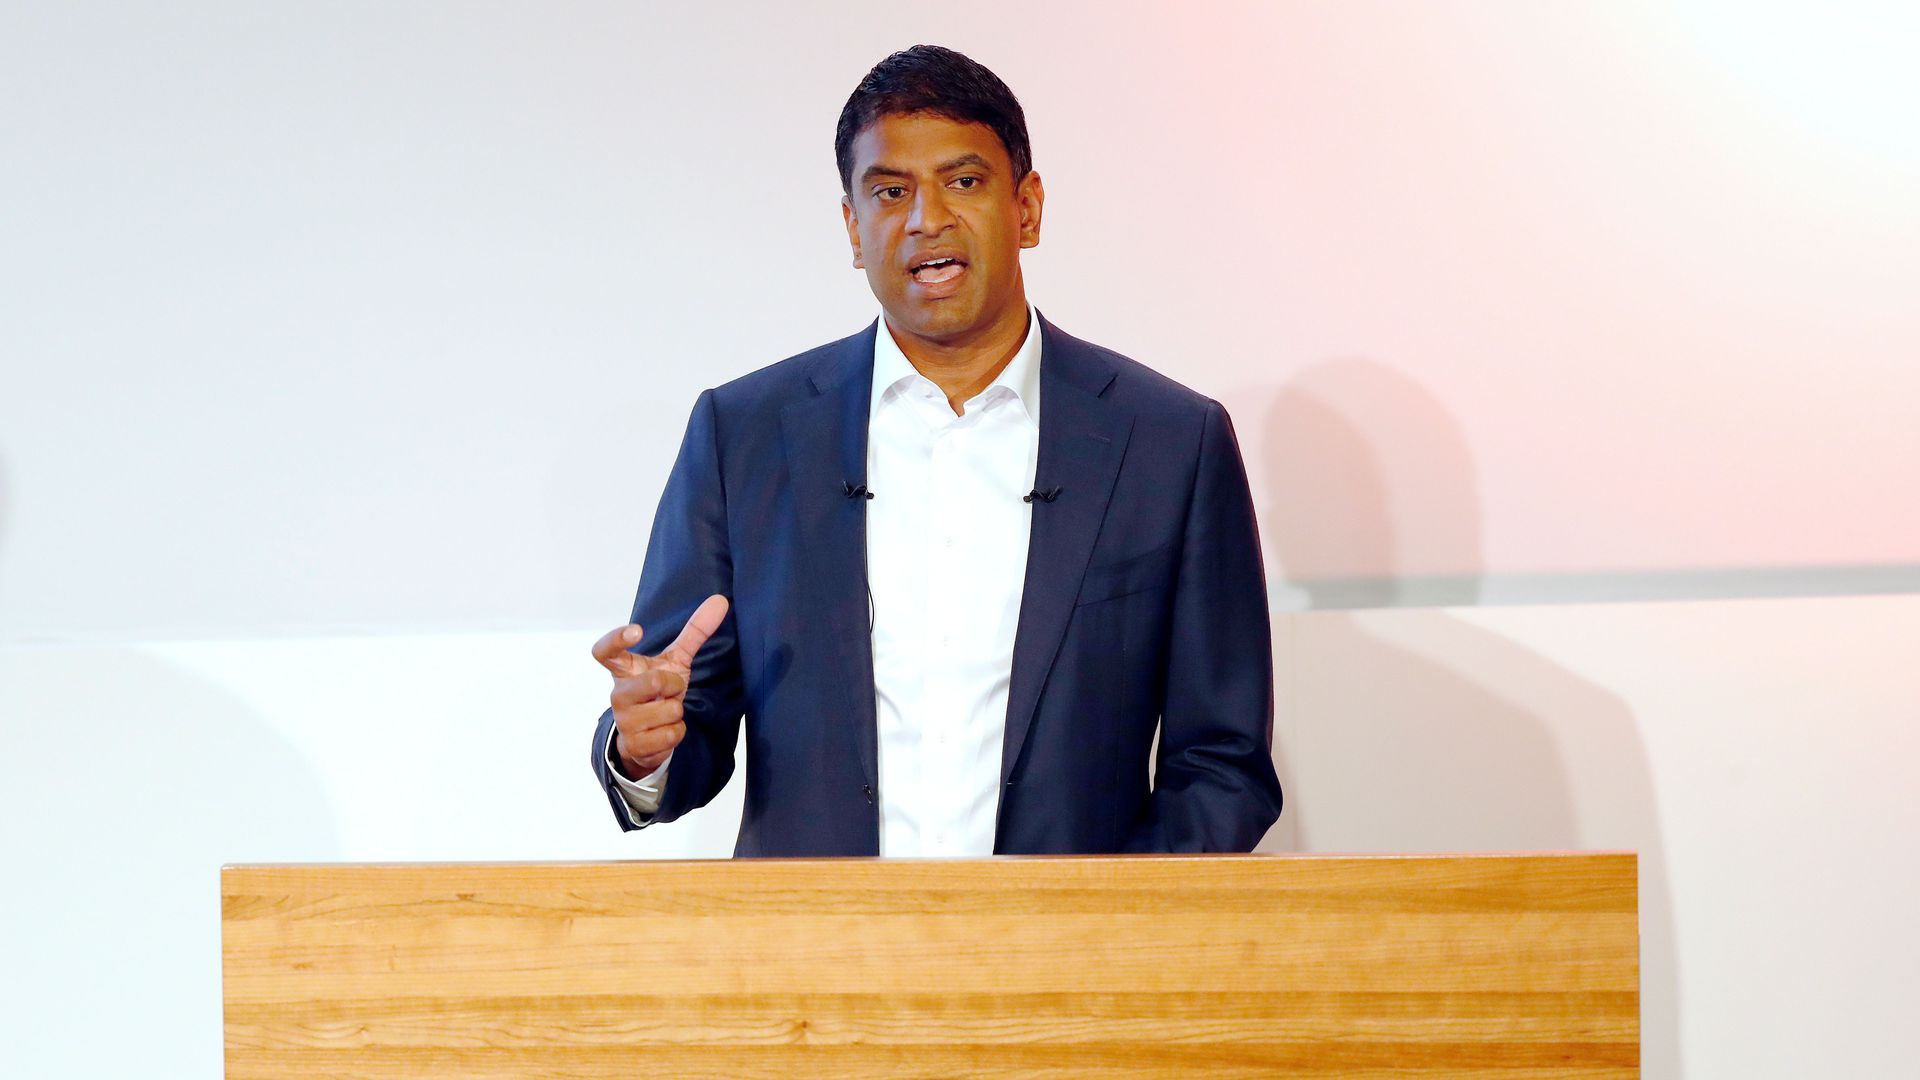 Novartis CEO Vas Narasimhan talks at a forum.